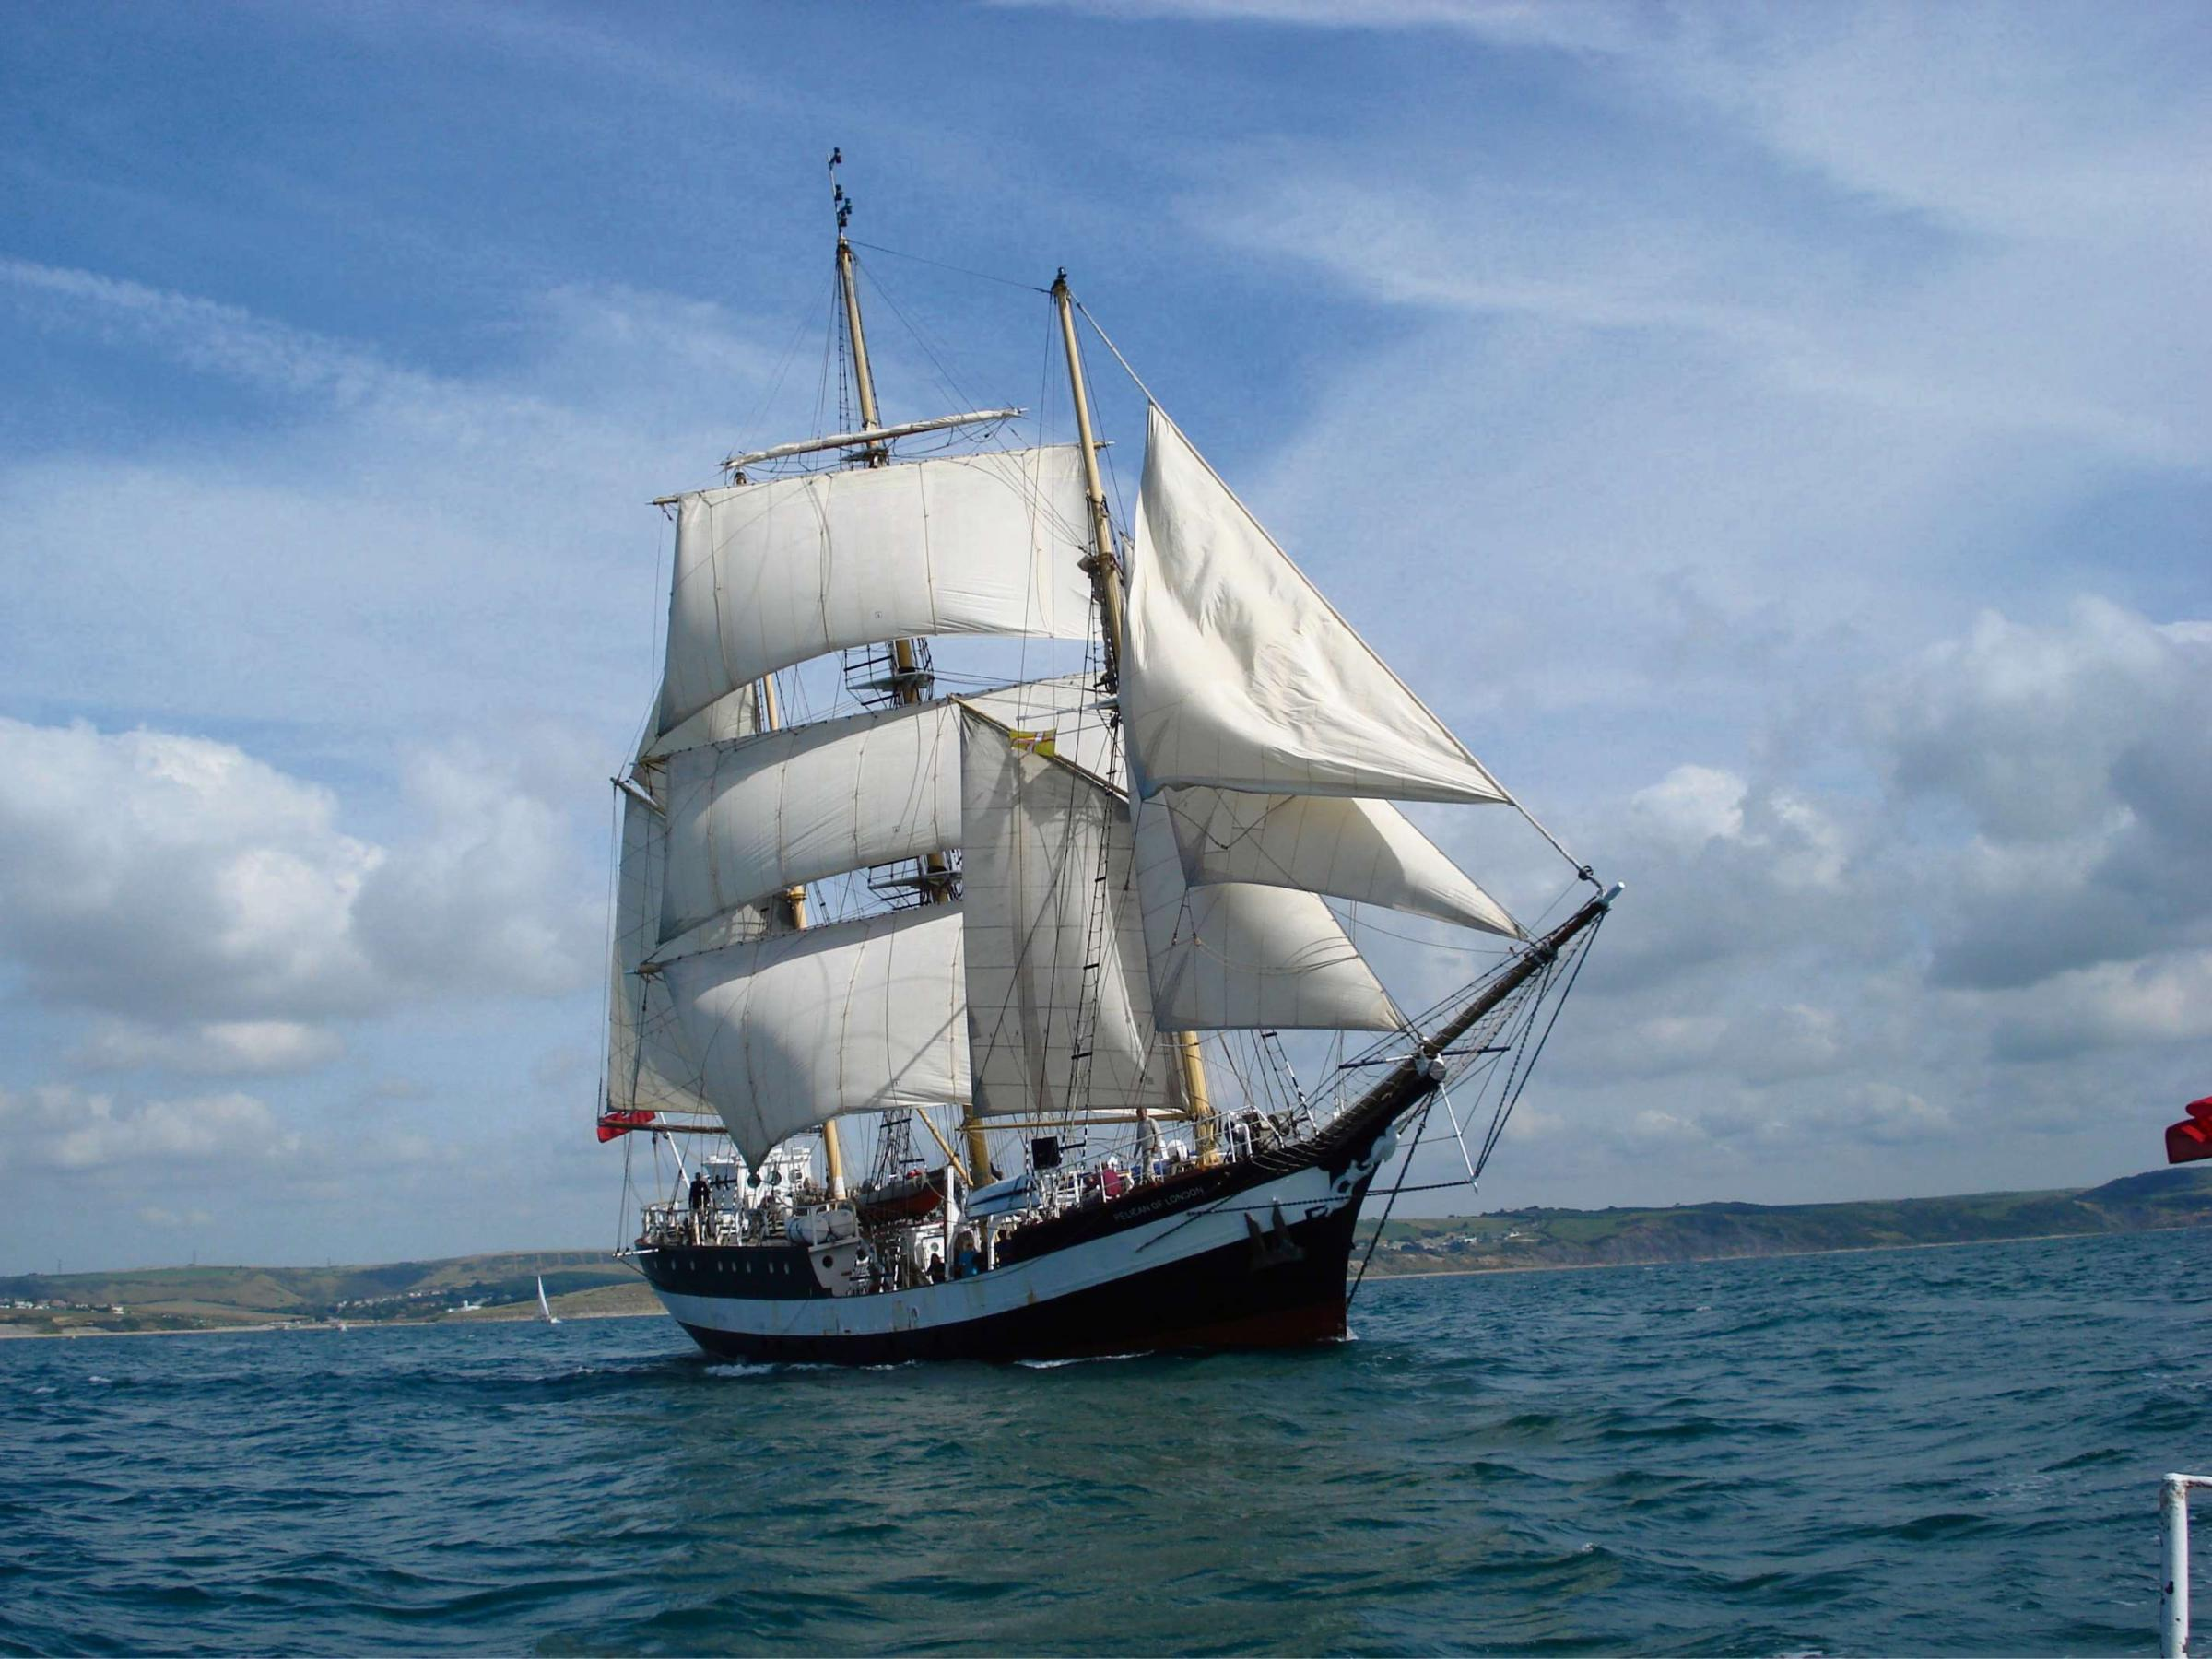 Tall ship to give bird's eye view of waterway